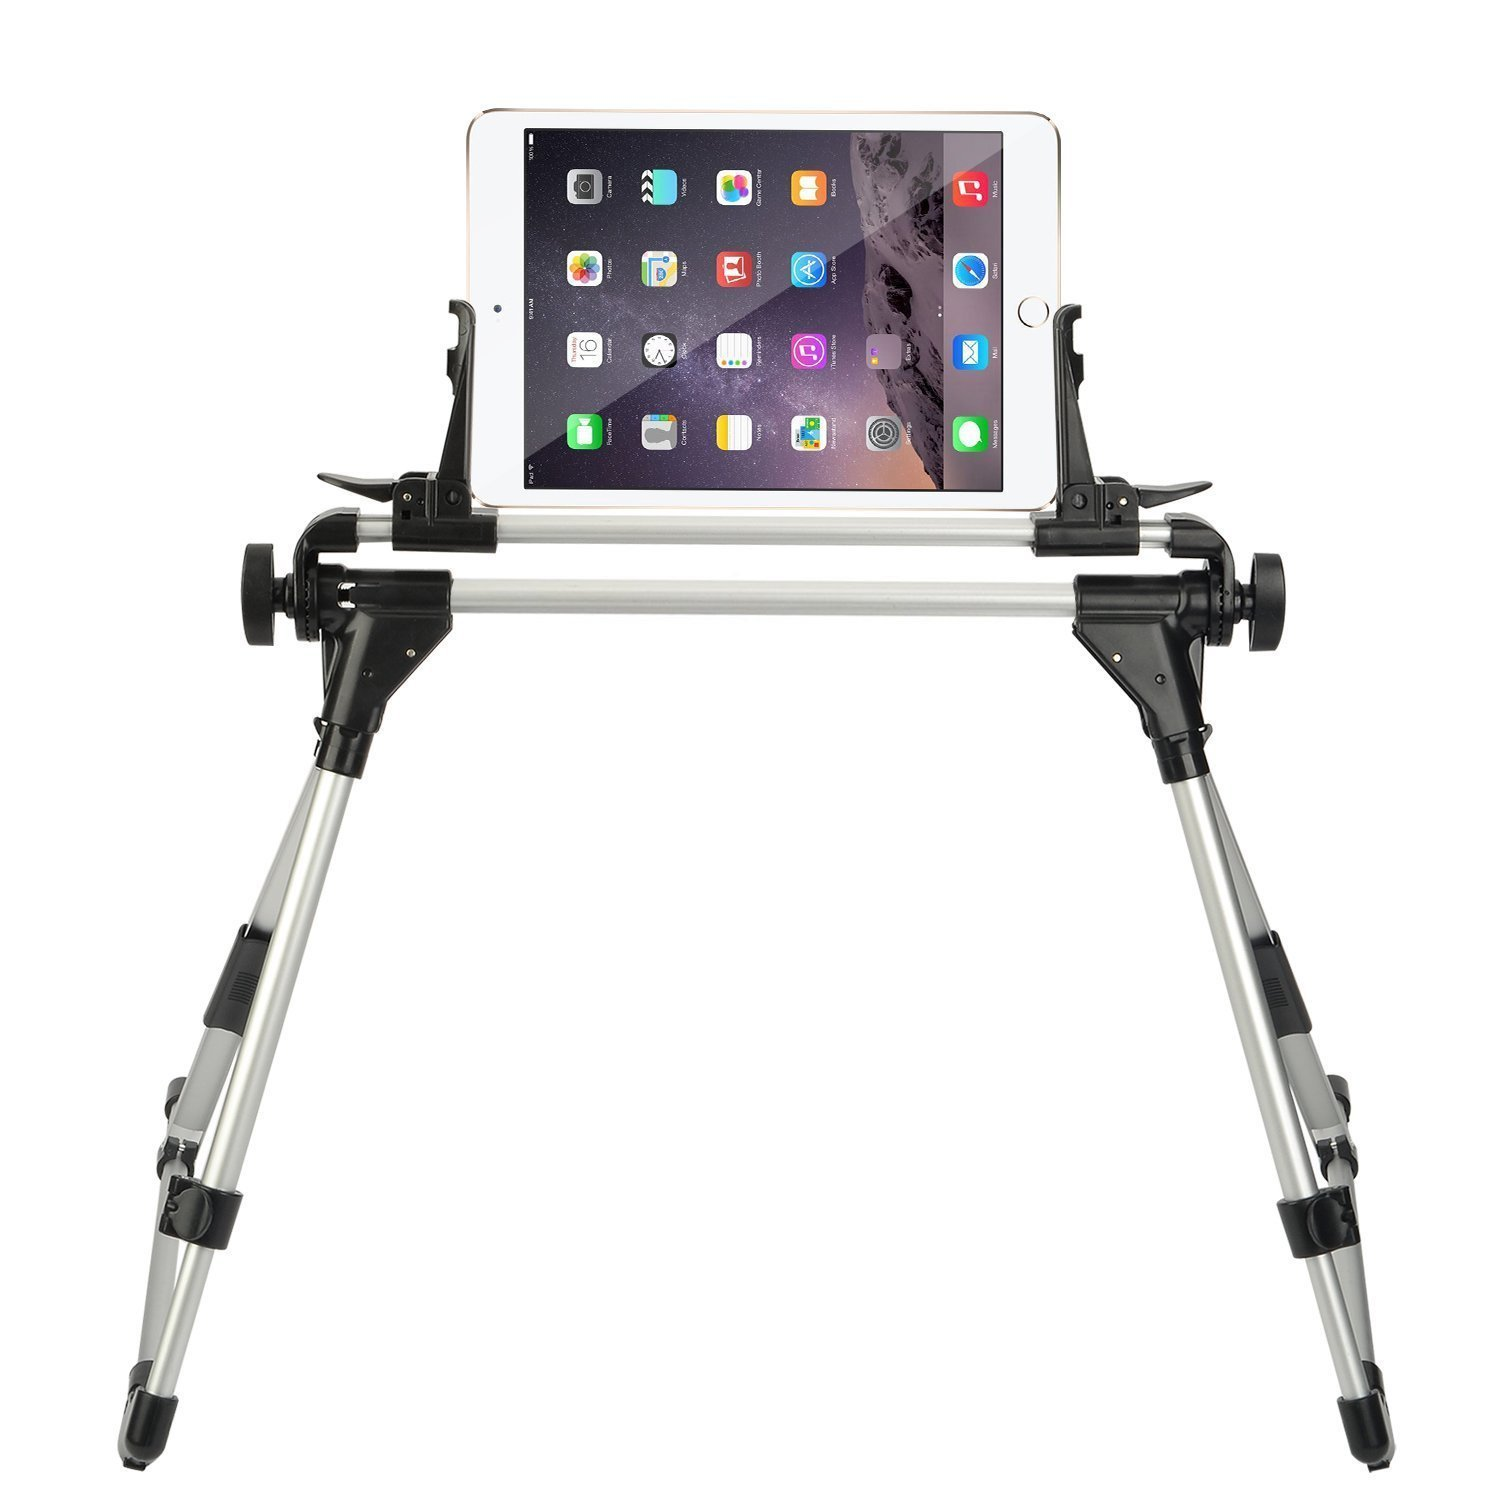 StillCool Universal Tablet Bed Ipad Stand Holder Frame Intersection Angle Easy Adjustment for iPad iPhone Samsung Galaxy Tab (Silver&Black)